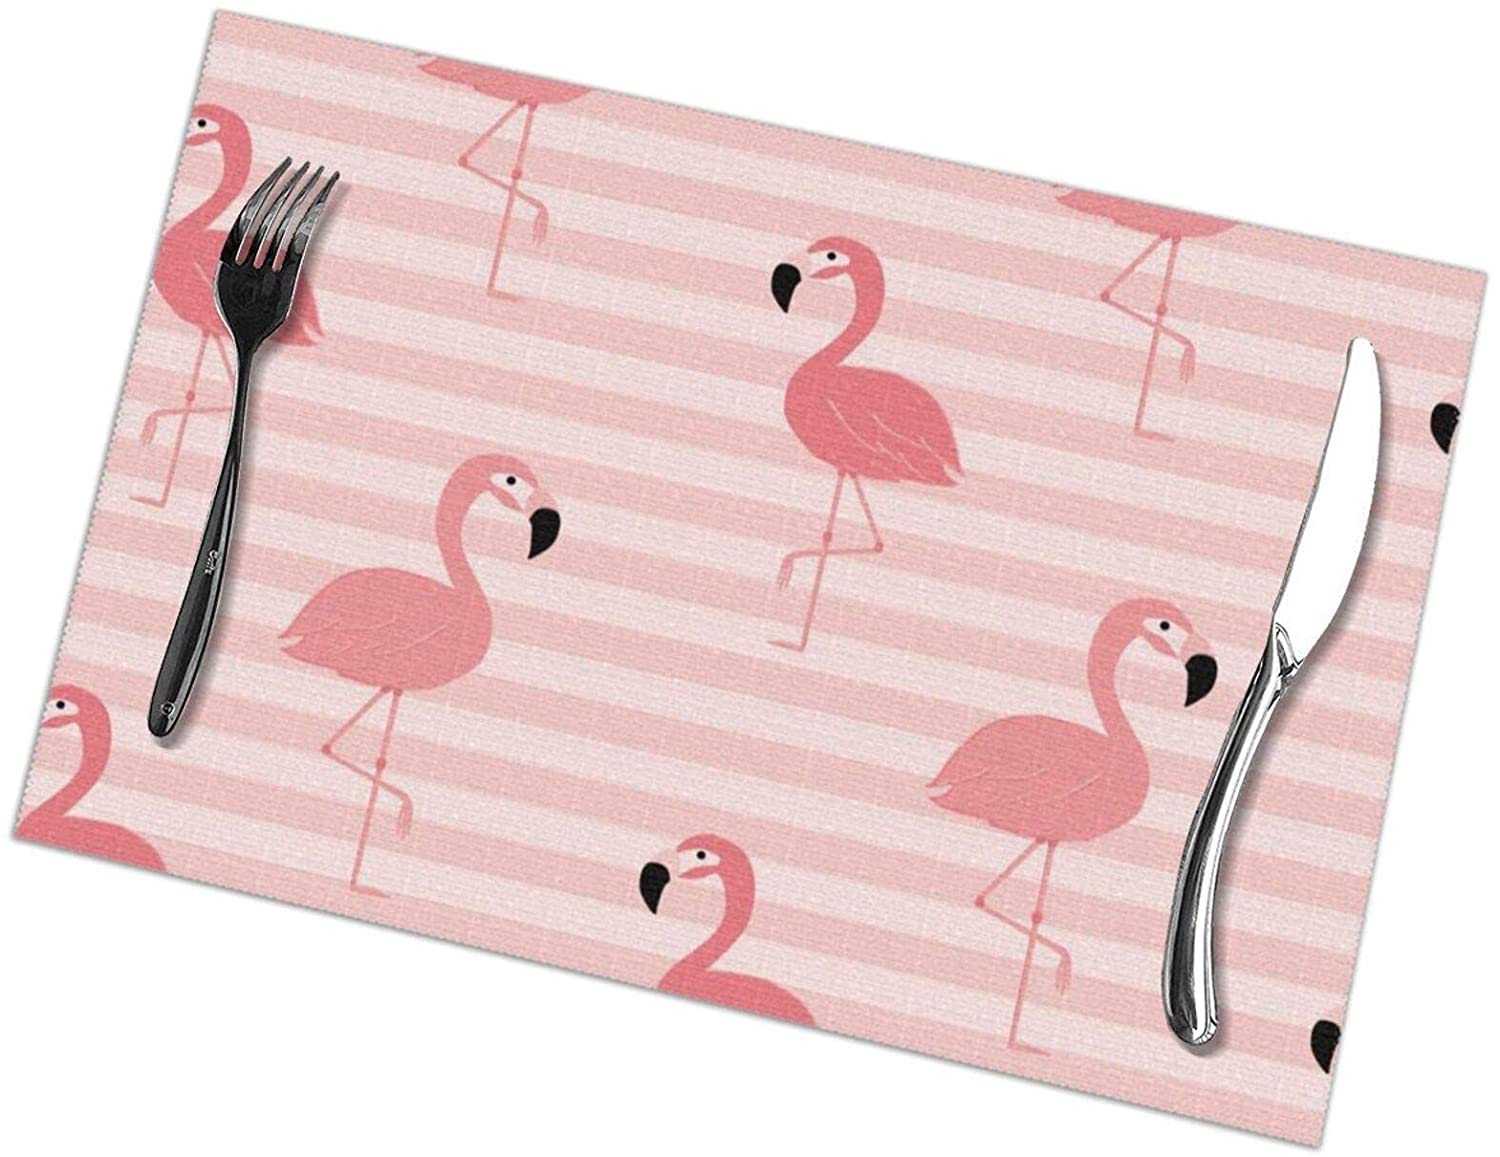 N/W Placemats Set of 6 with Pink Flamingo 12x18 Inches Polyester Heat Resistant Dining Table Place Mats,Printed Pink Stripes Kitchen Table Mats.